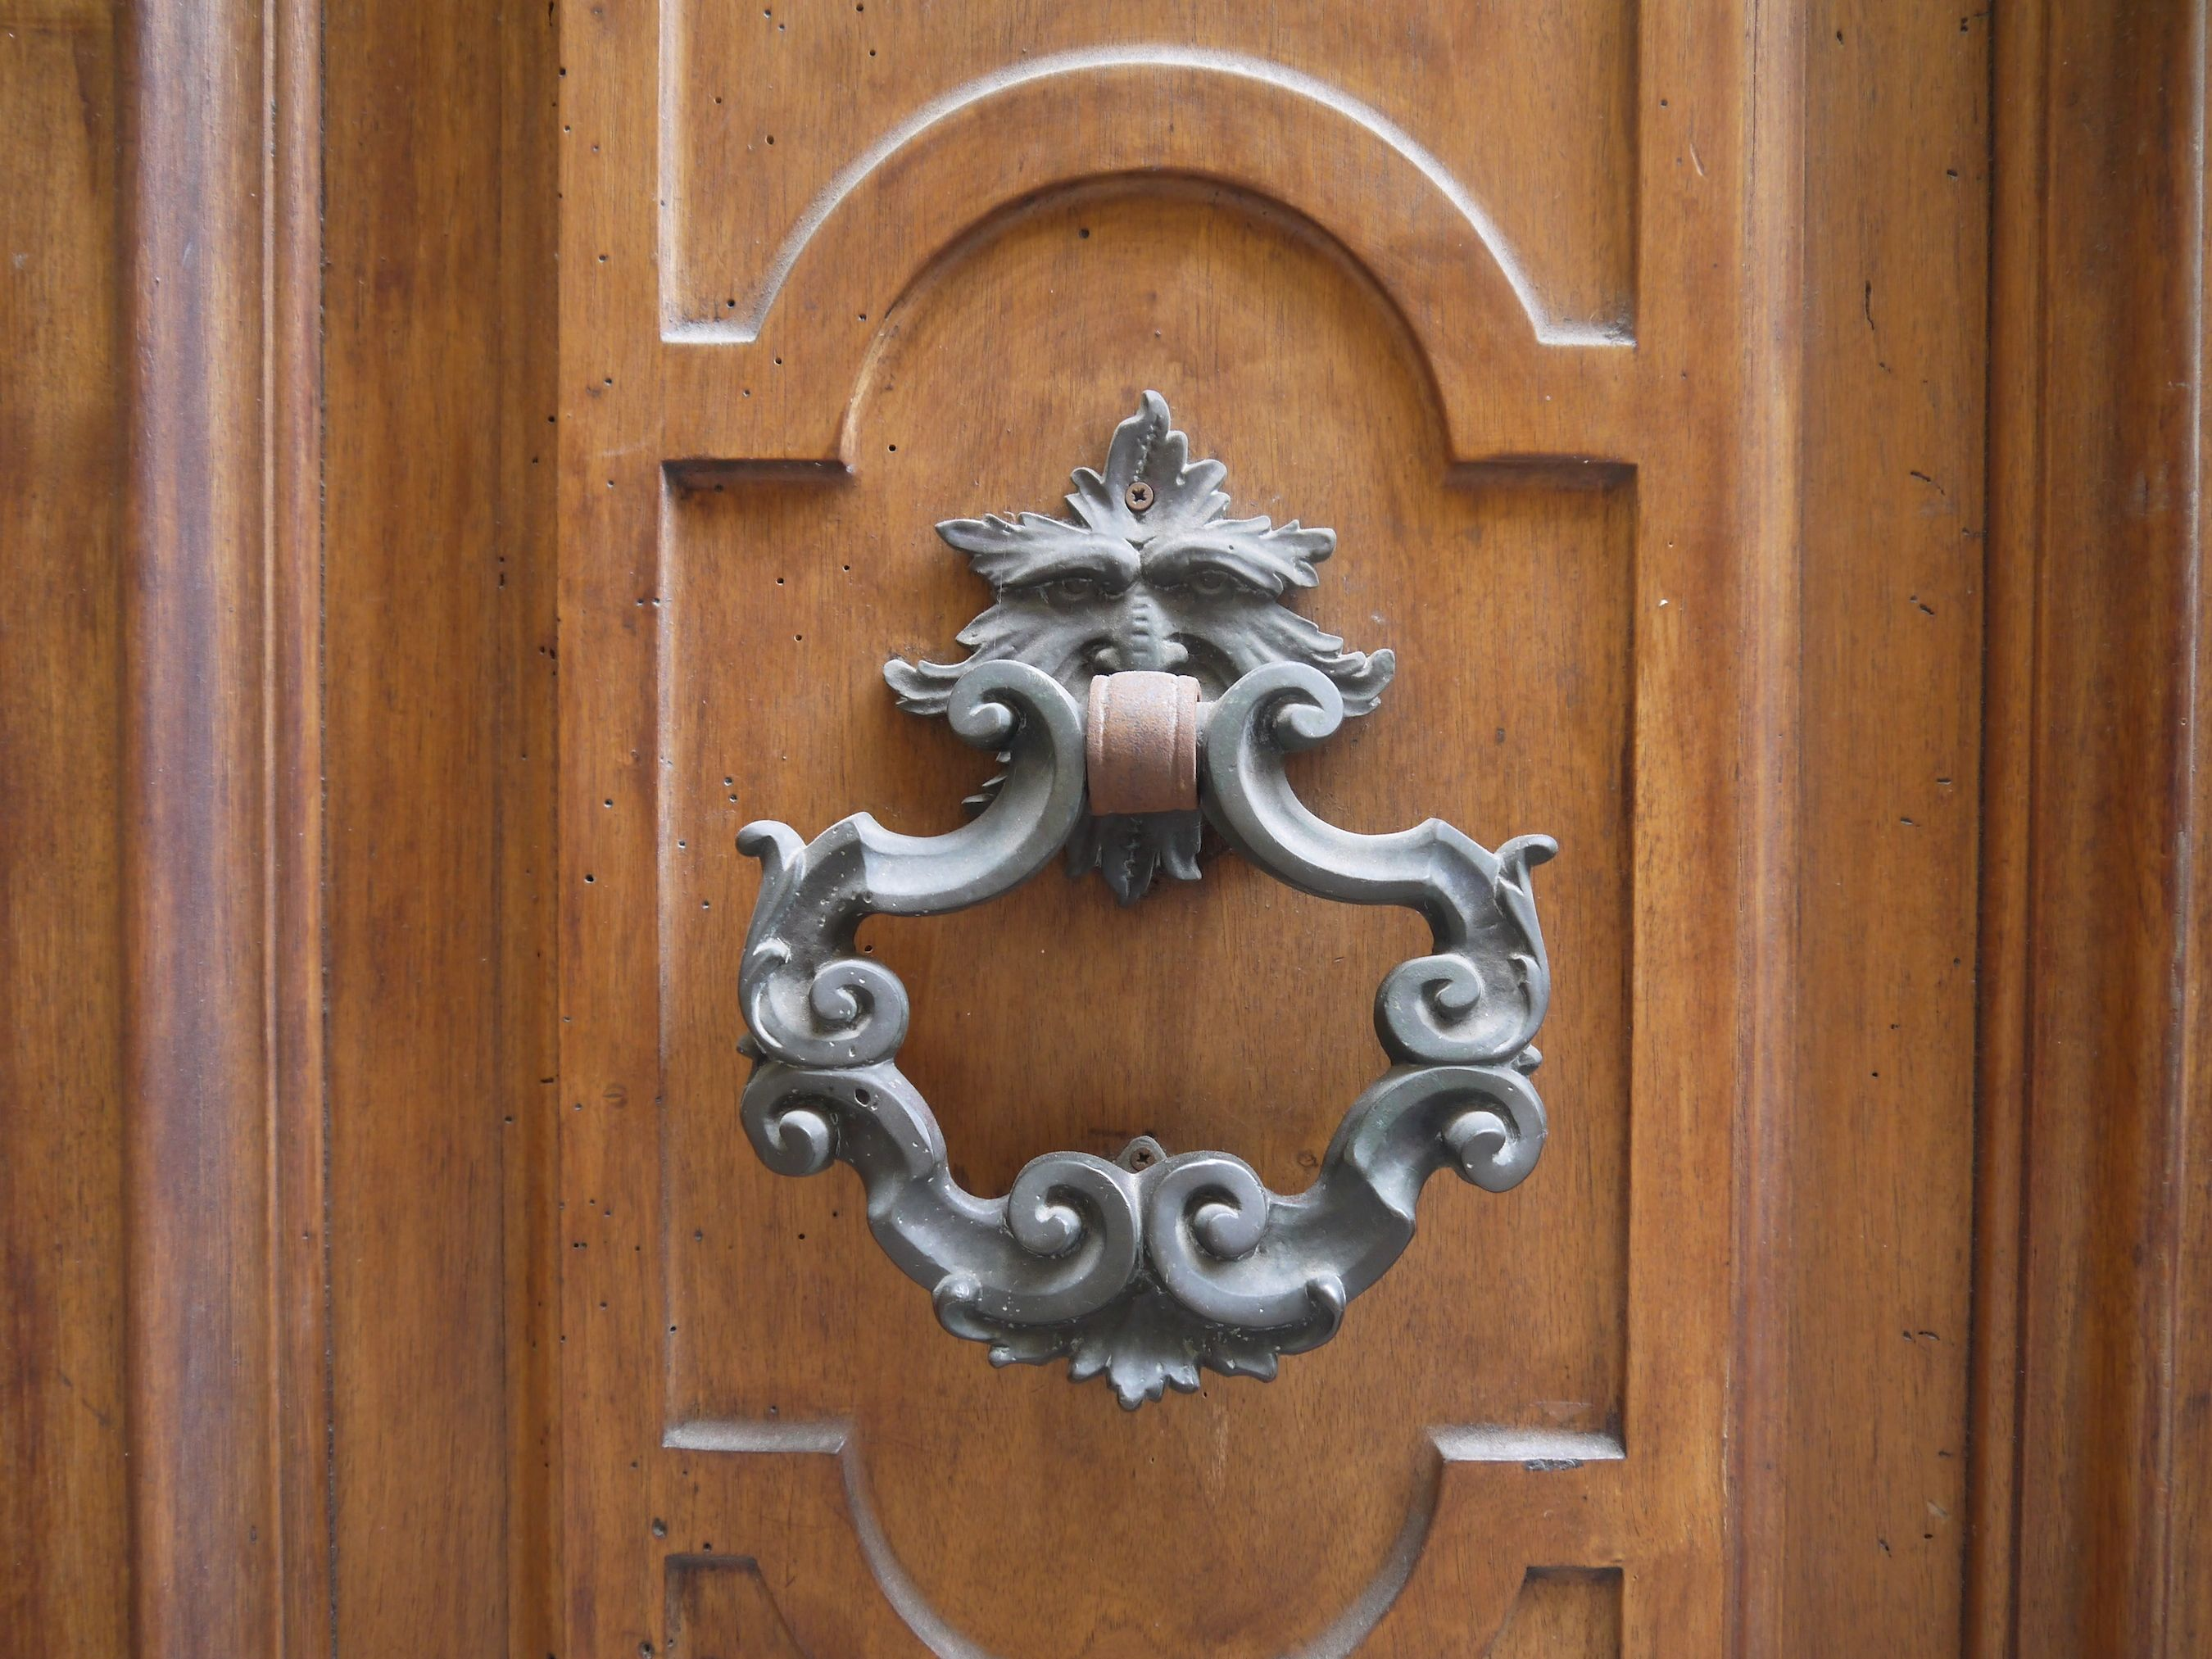 Italy - where the door knockers seem to come straight from the labyrinth...